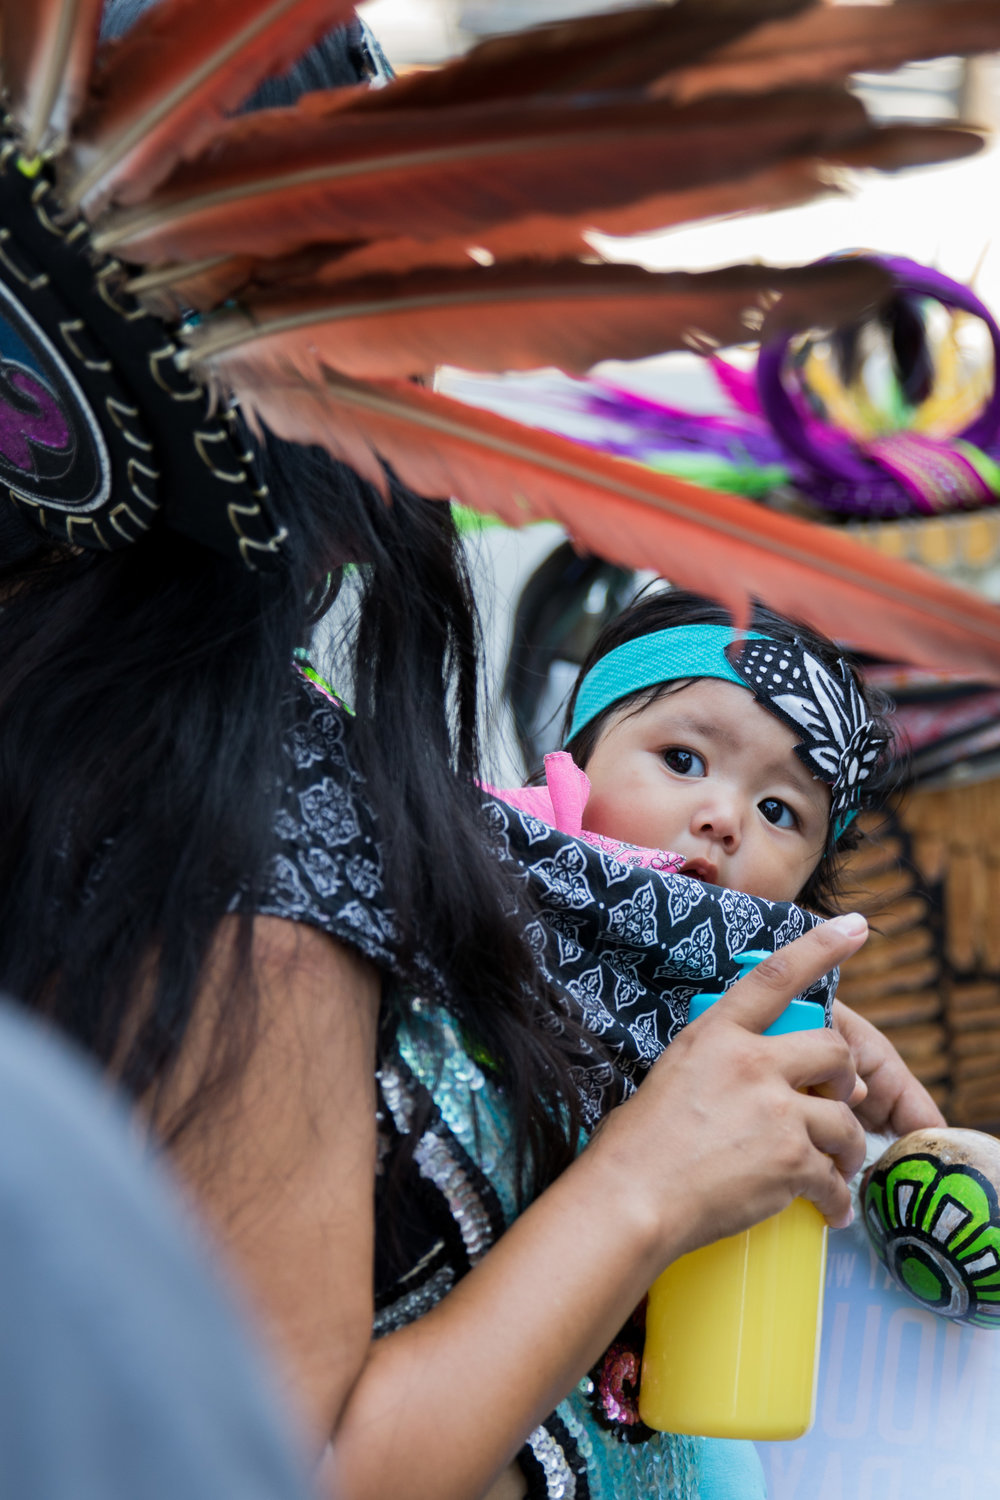 Lilia Herrera (left) takes a break to feed her daughter Xochipilli Herrera (right) at Los Angeles City Hall for the replacement of Columbus Day with Indigenous Peoples Day which was successful on August 30, 2017 in Los Angeles, California (Photo By: Zane Meyer-Thornton)